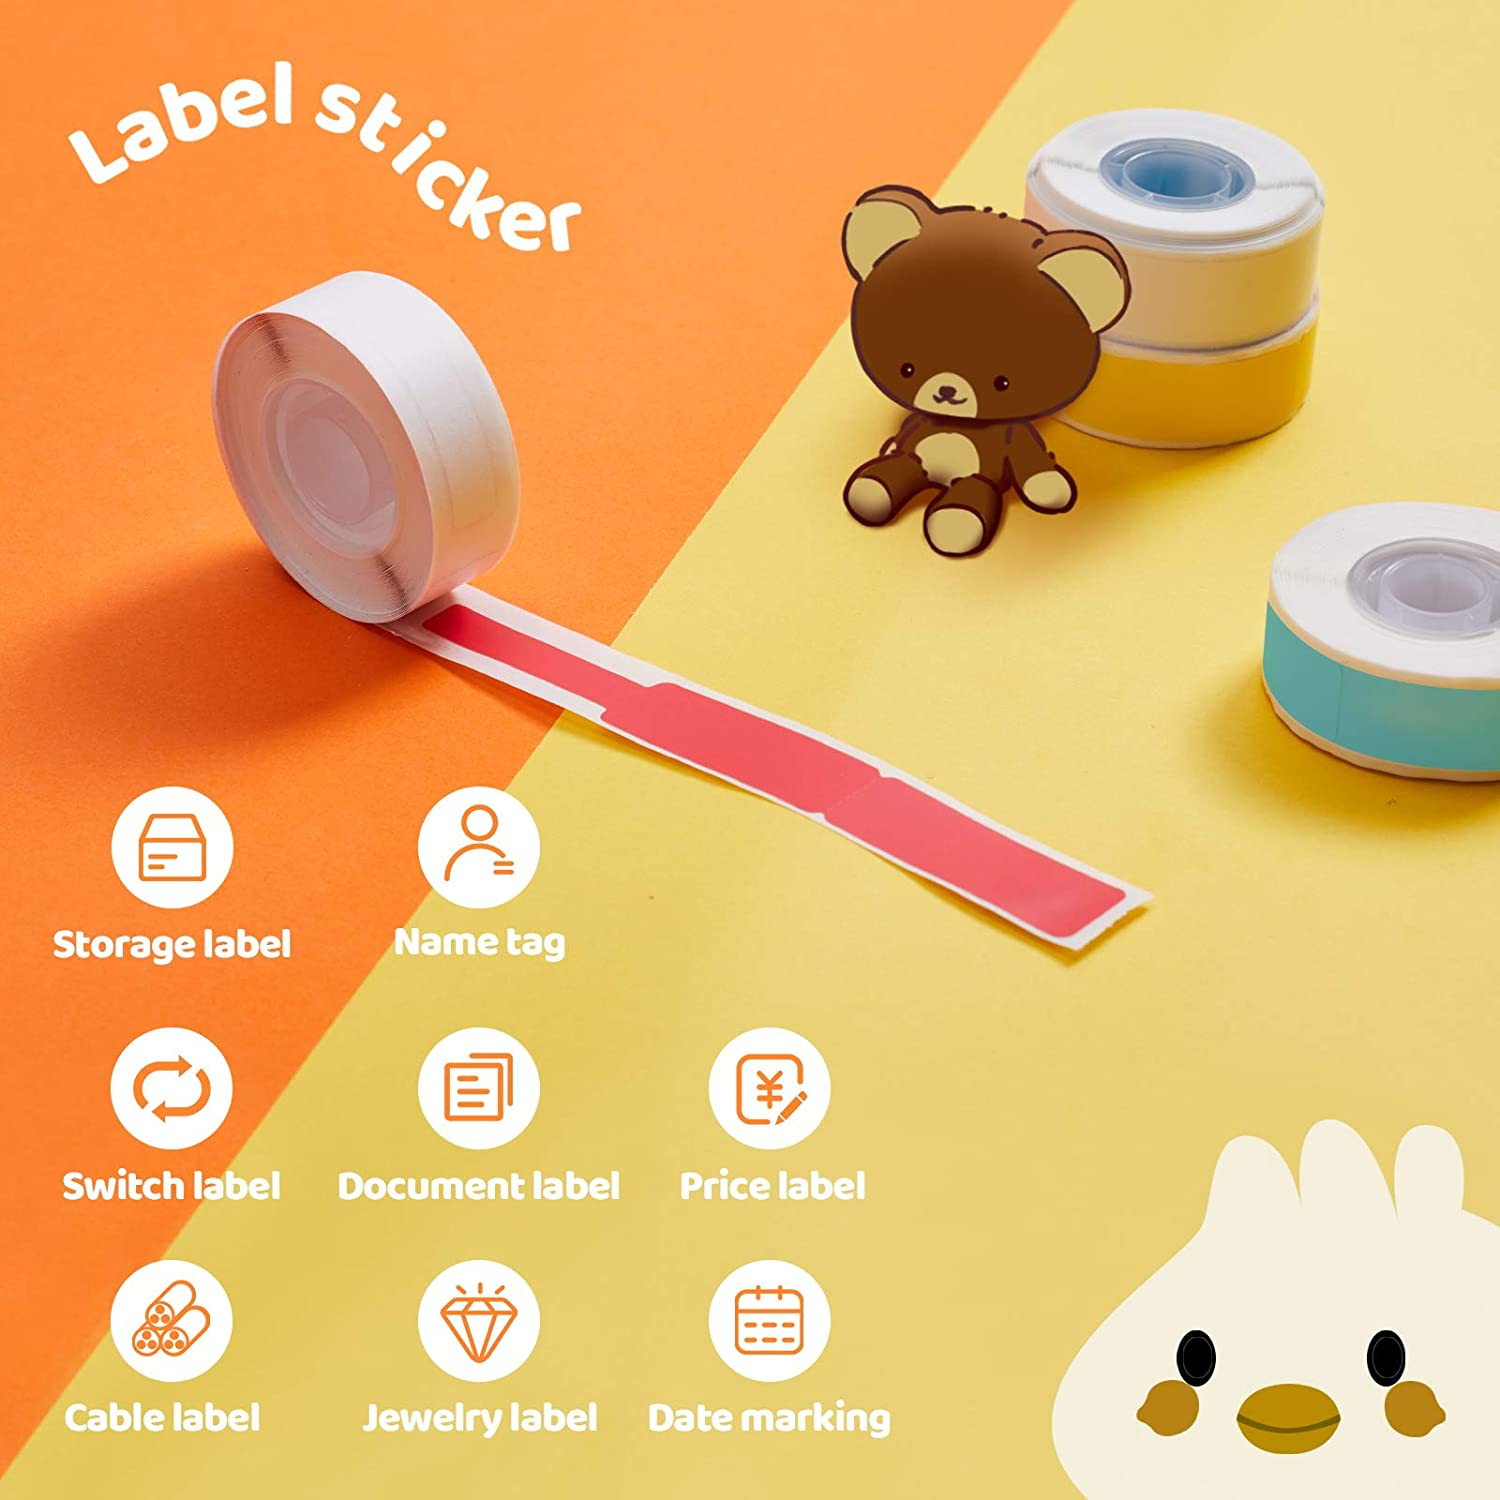 Compatible with MUNBYN Bluetooth Label Maker 260 Labels//roll Office 0.47 x 0.87 12mm x 22mm School Suitable for Home Self-Adhesive Label MUNBYN Thermal Label 10 Rolls